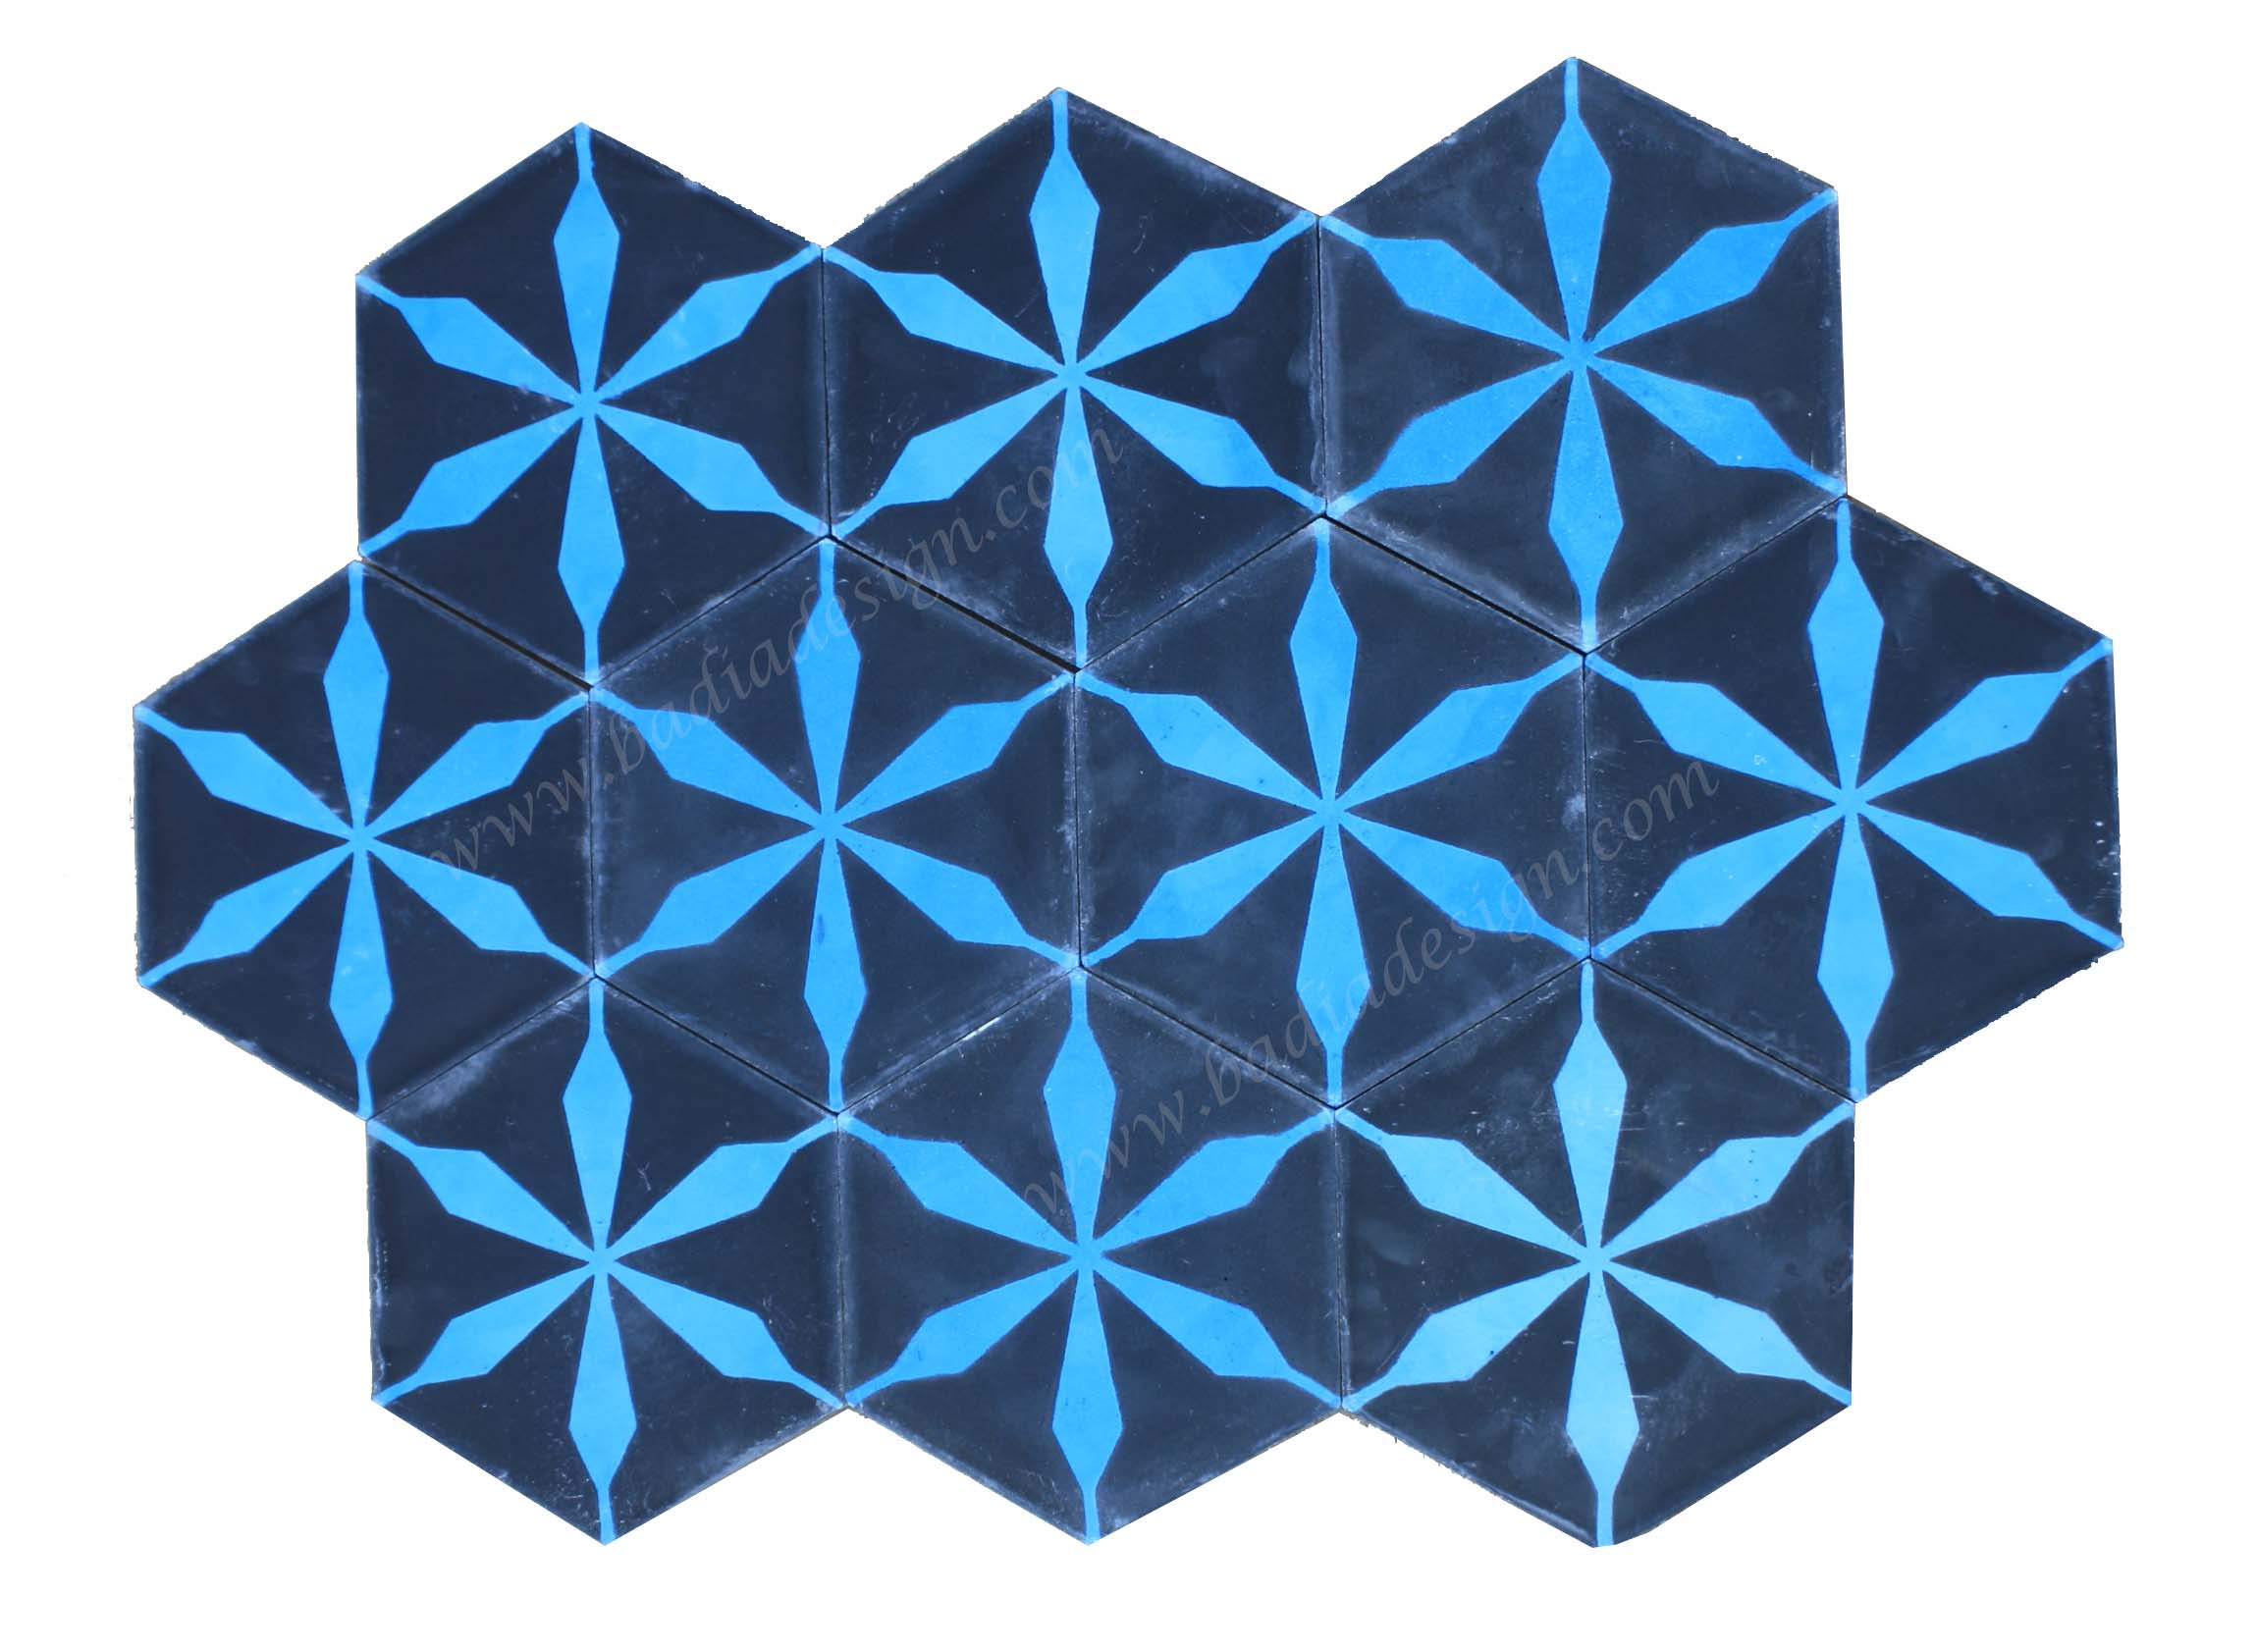 hexagon-shaped-handmade-cement-tile-ct100-1.jpg